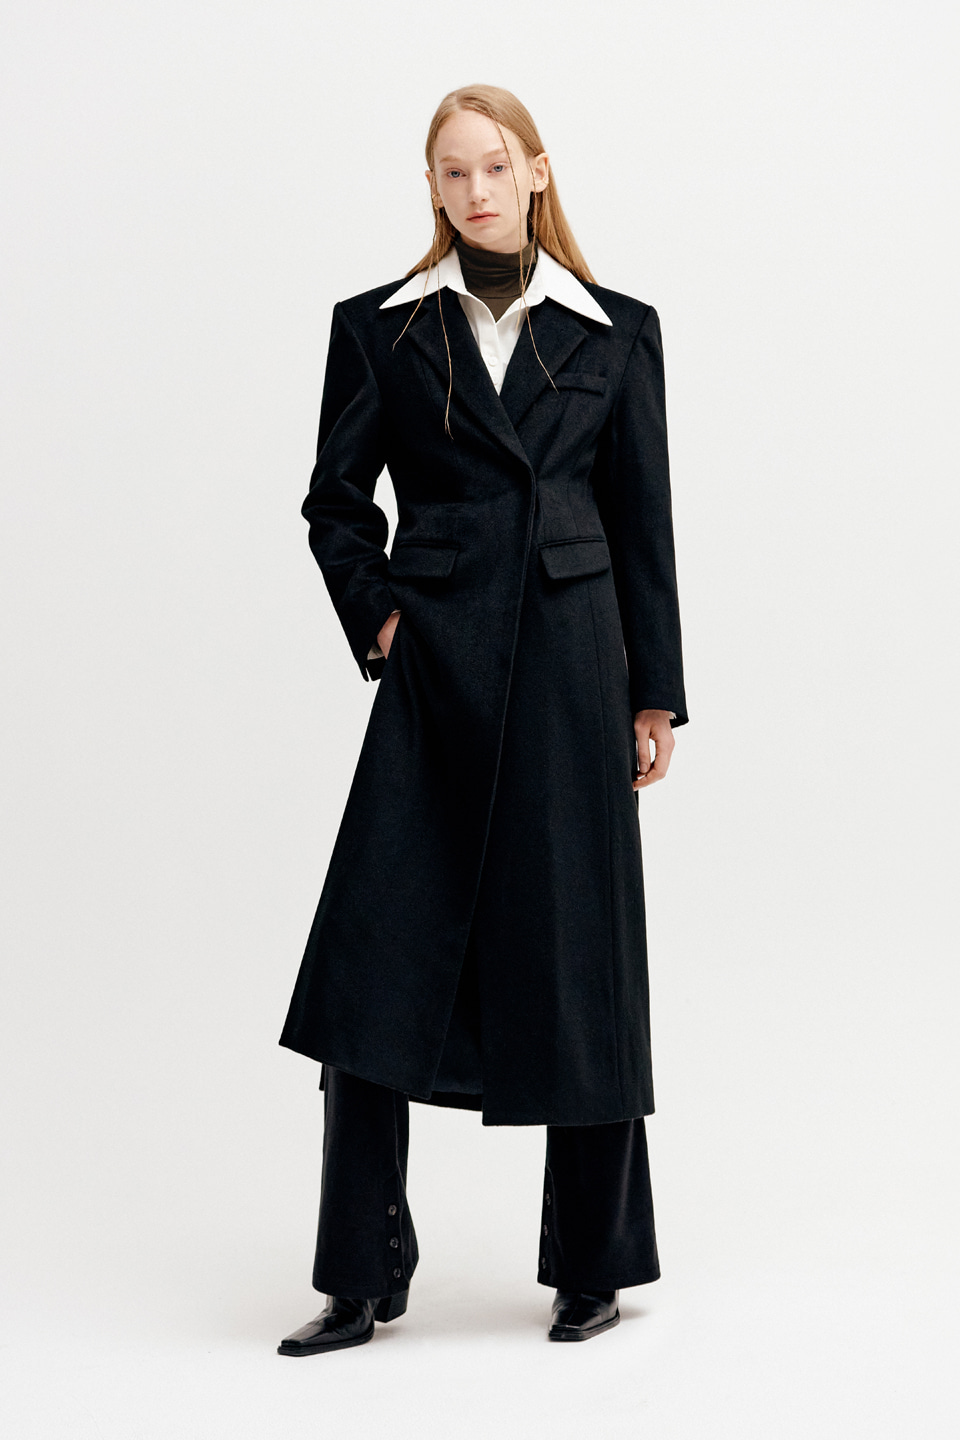 LINE CUT 2-WAY SINGLE WOOL COAT - BLACK